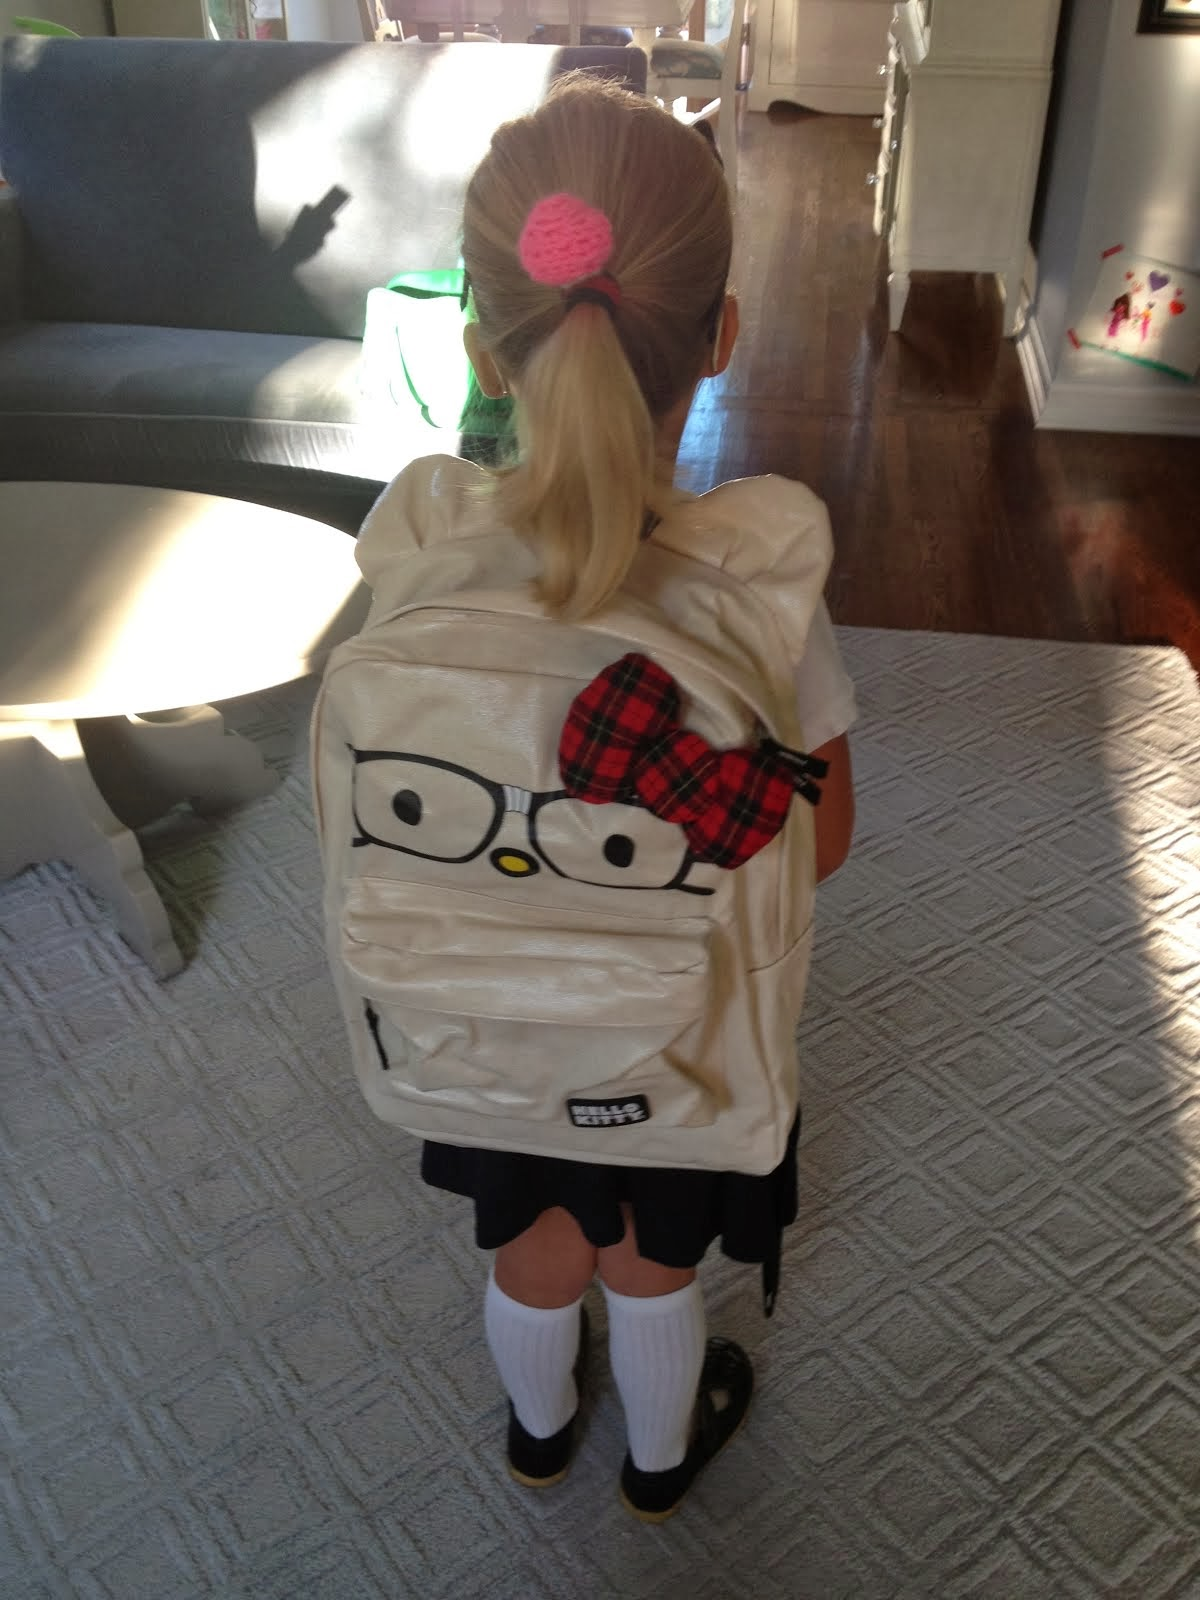 Off to school she goes...